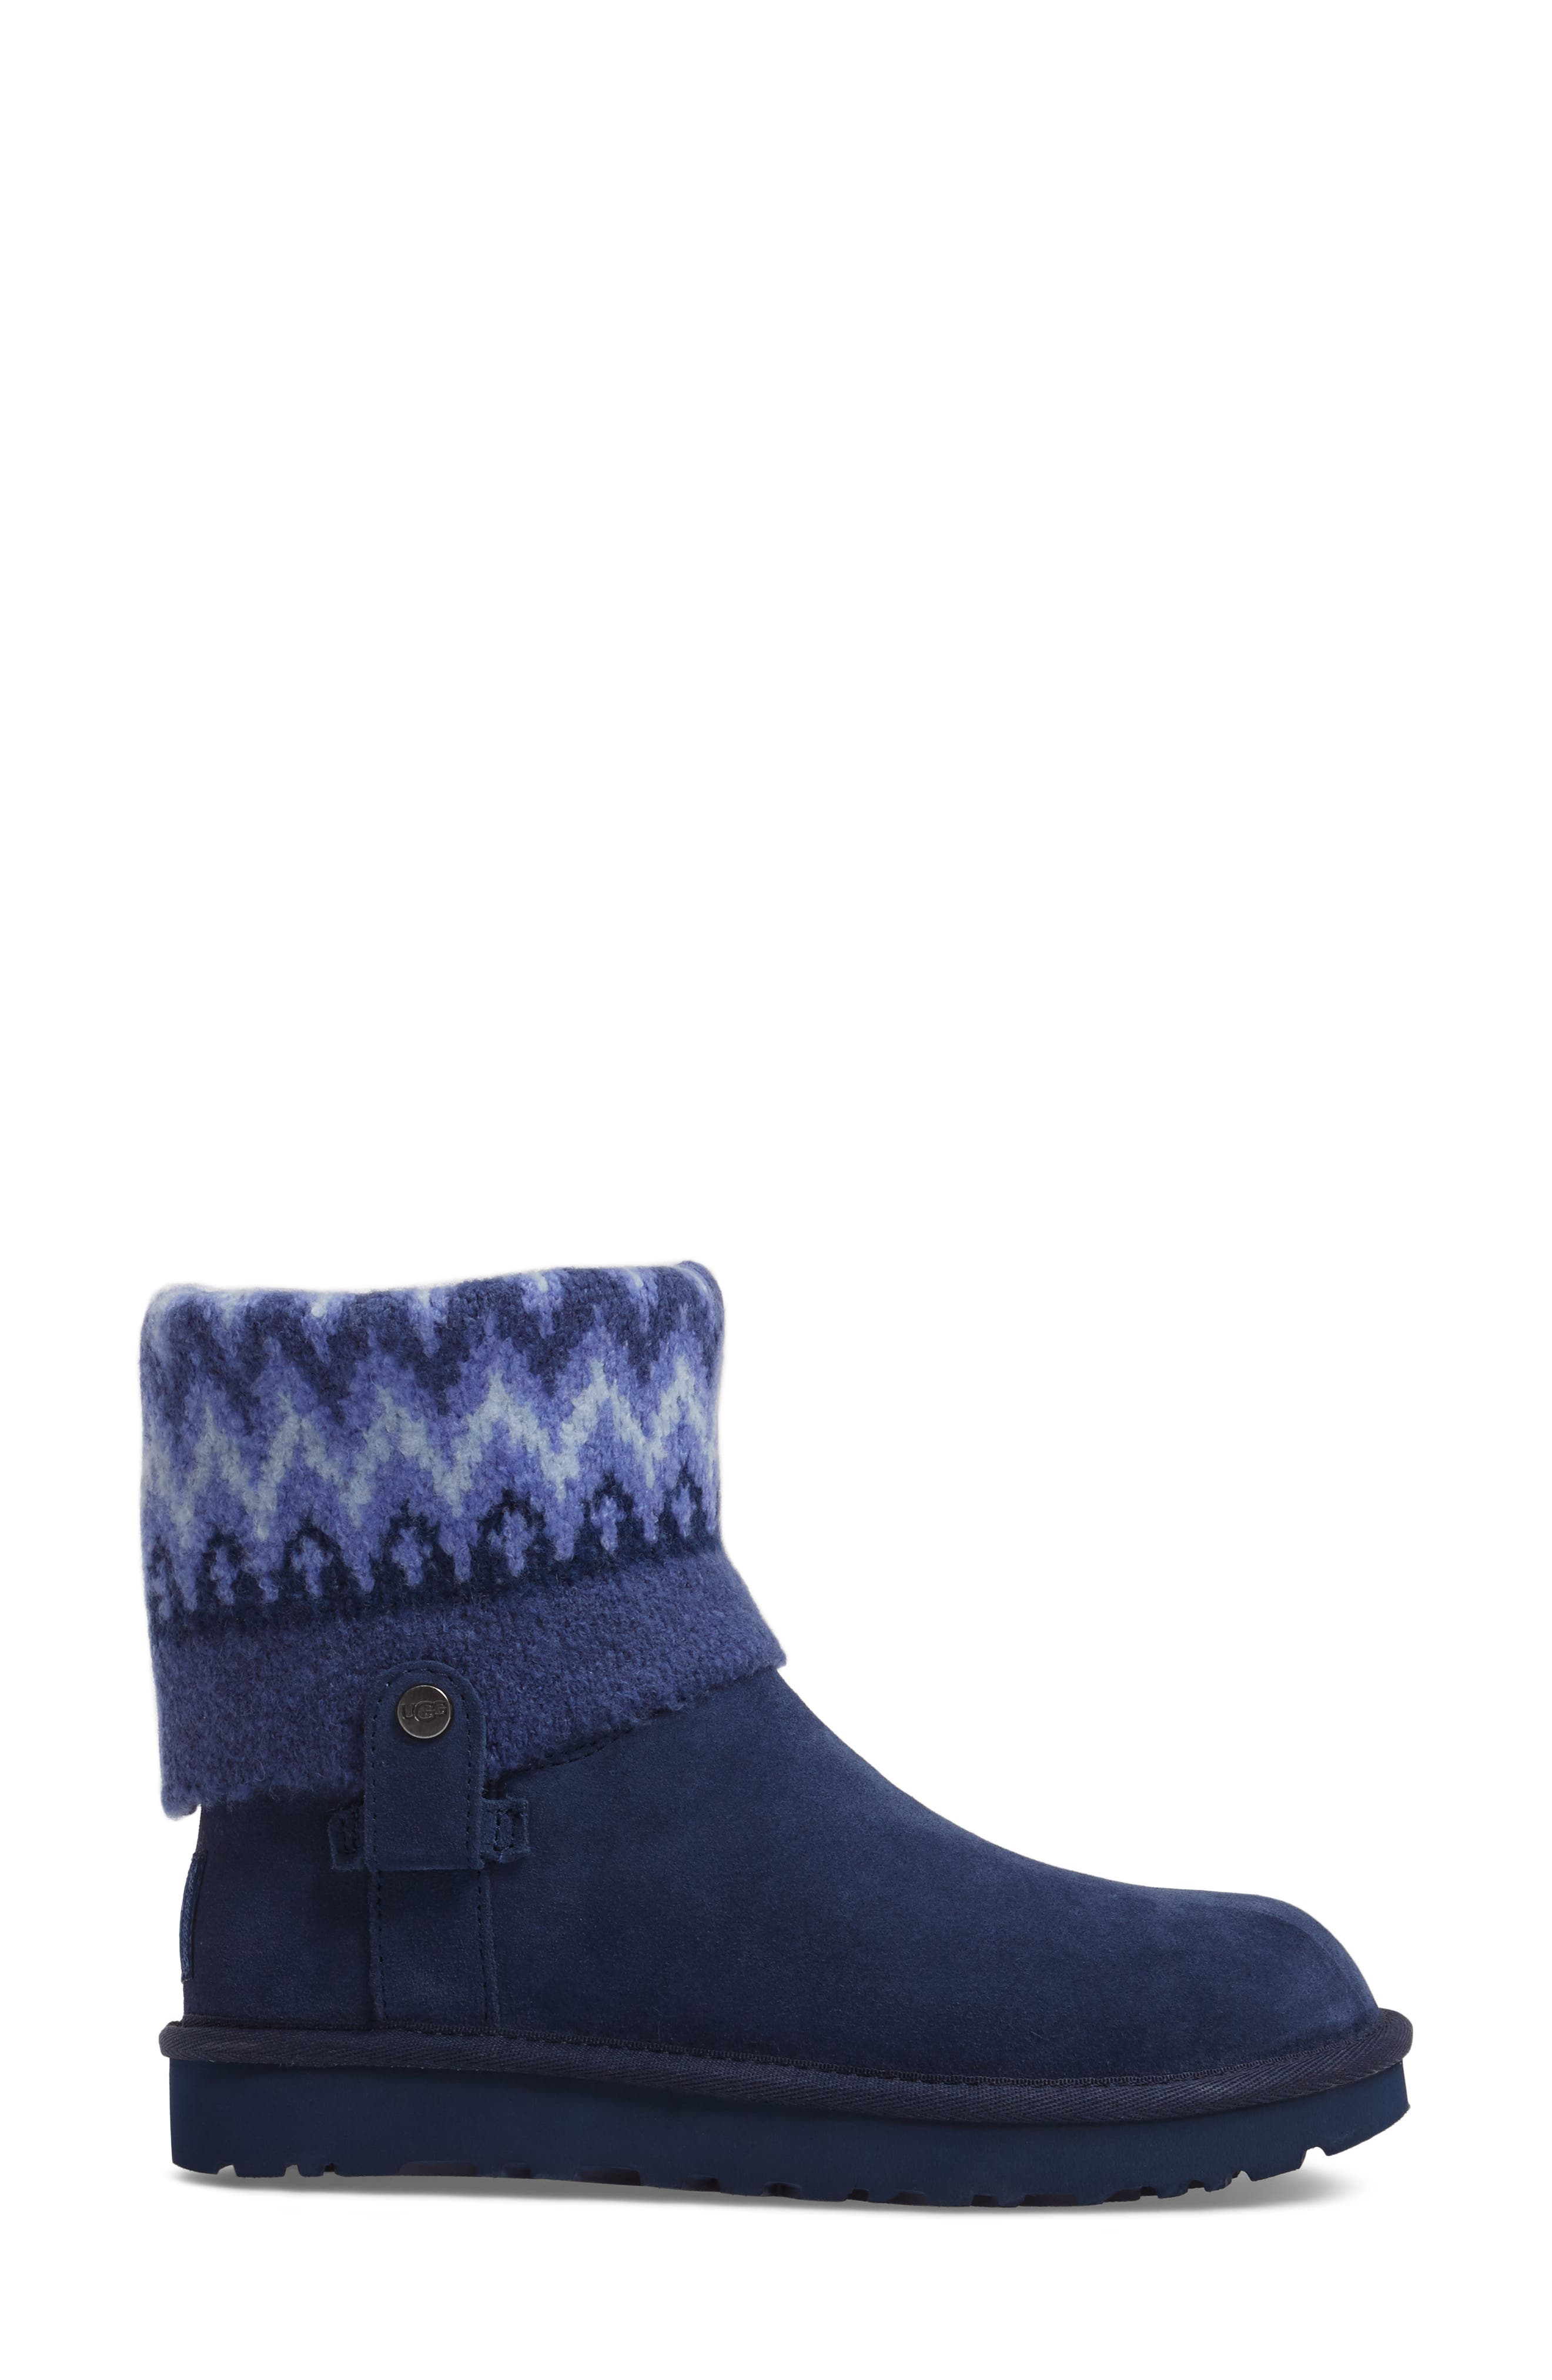 Saela Icelandic Boot,                             Alternate thumbnail 3, color,                             Navy Suede